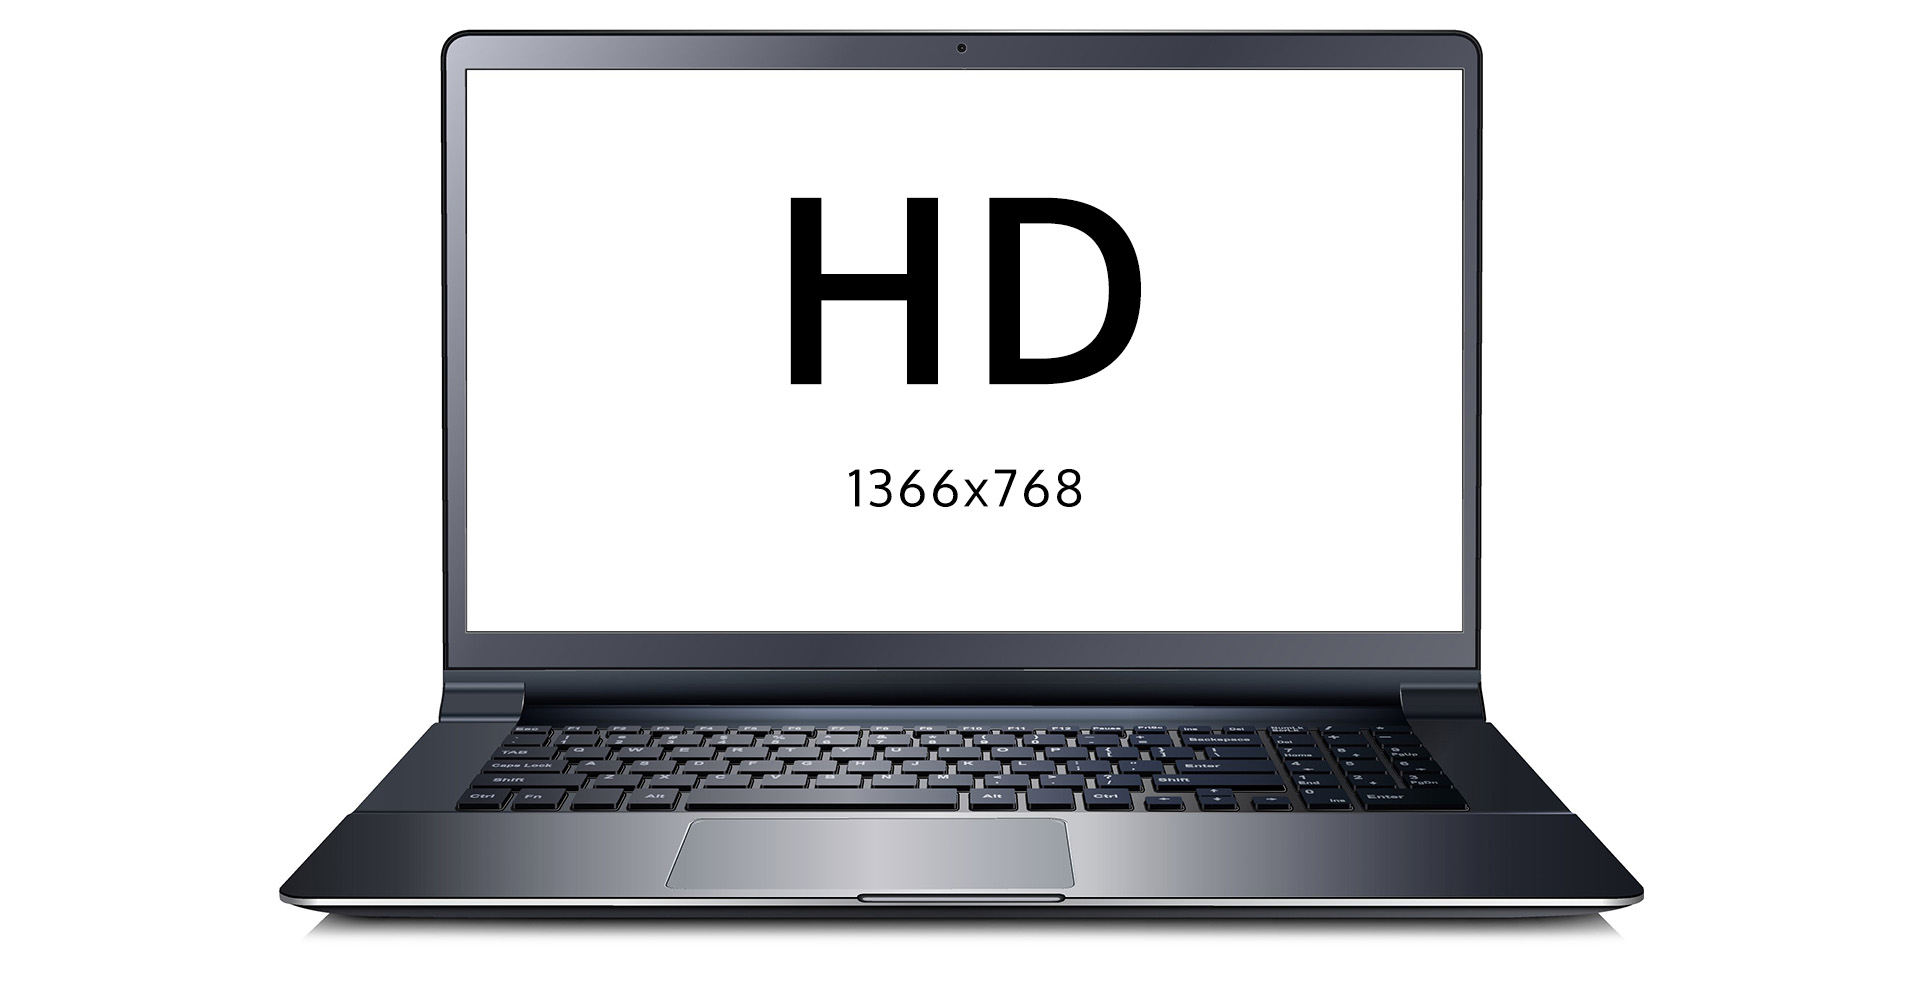 Fujitsu LifeBook A357 (S26391K425V300) 16 GB RAM/ 512 GB SSD/ 2TB HDD/ Windows 10 Pro                             HD 1366x768 resolutsioon